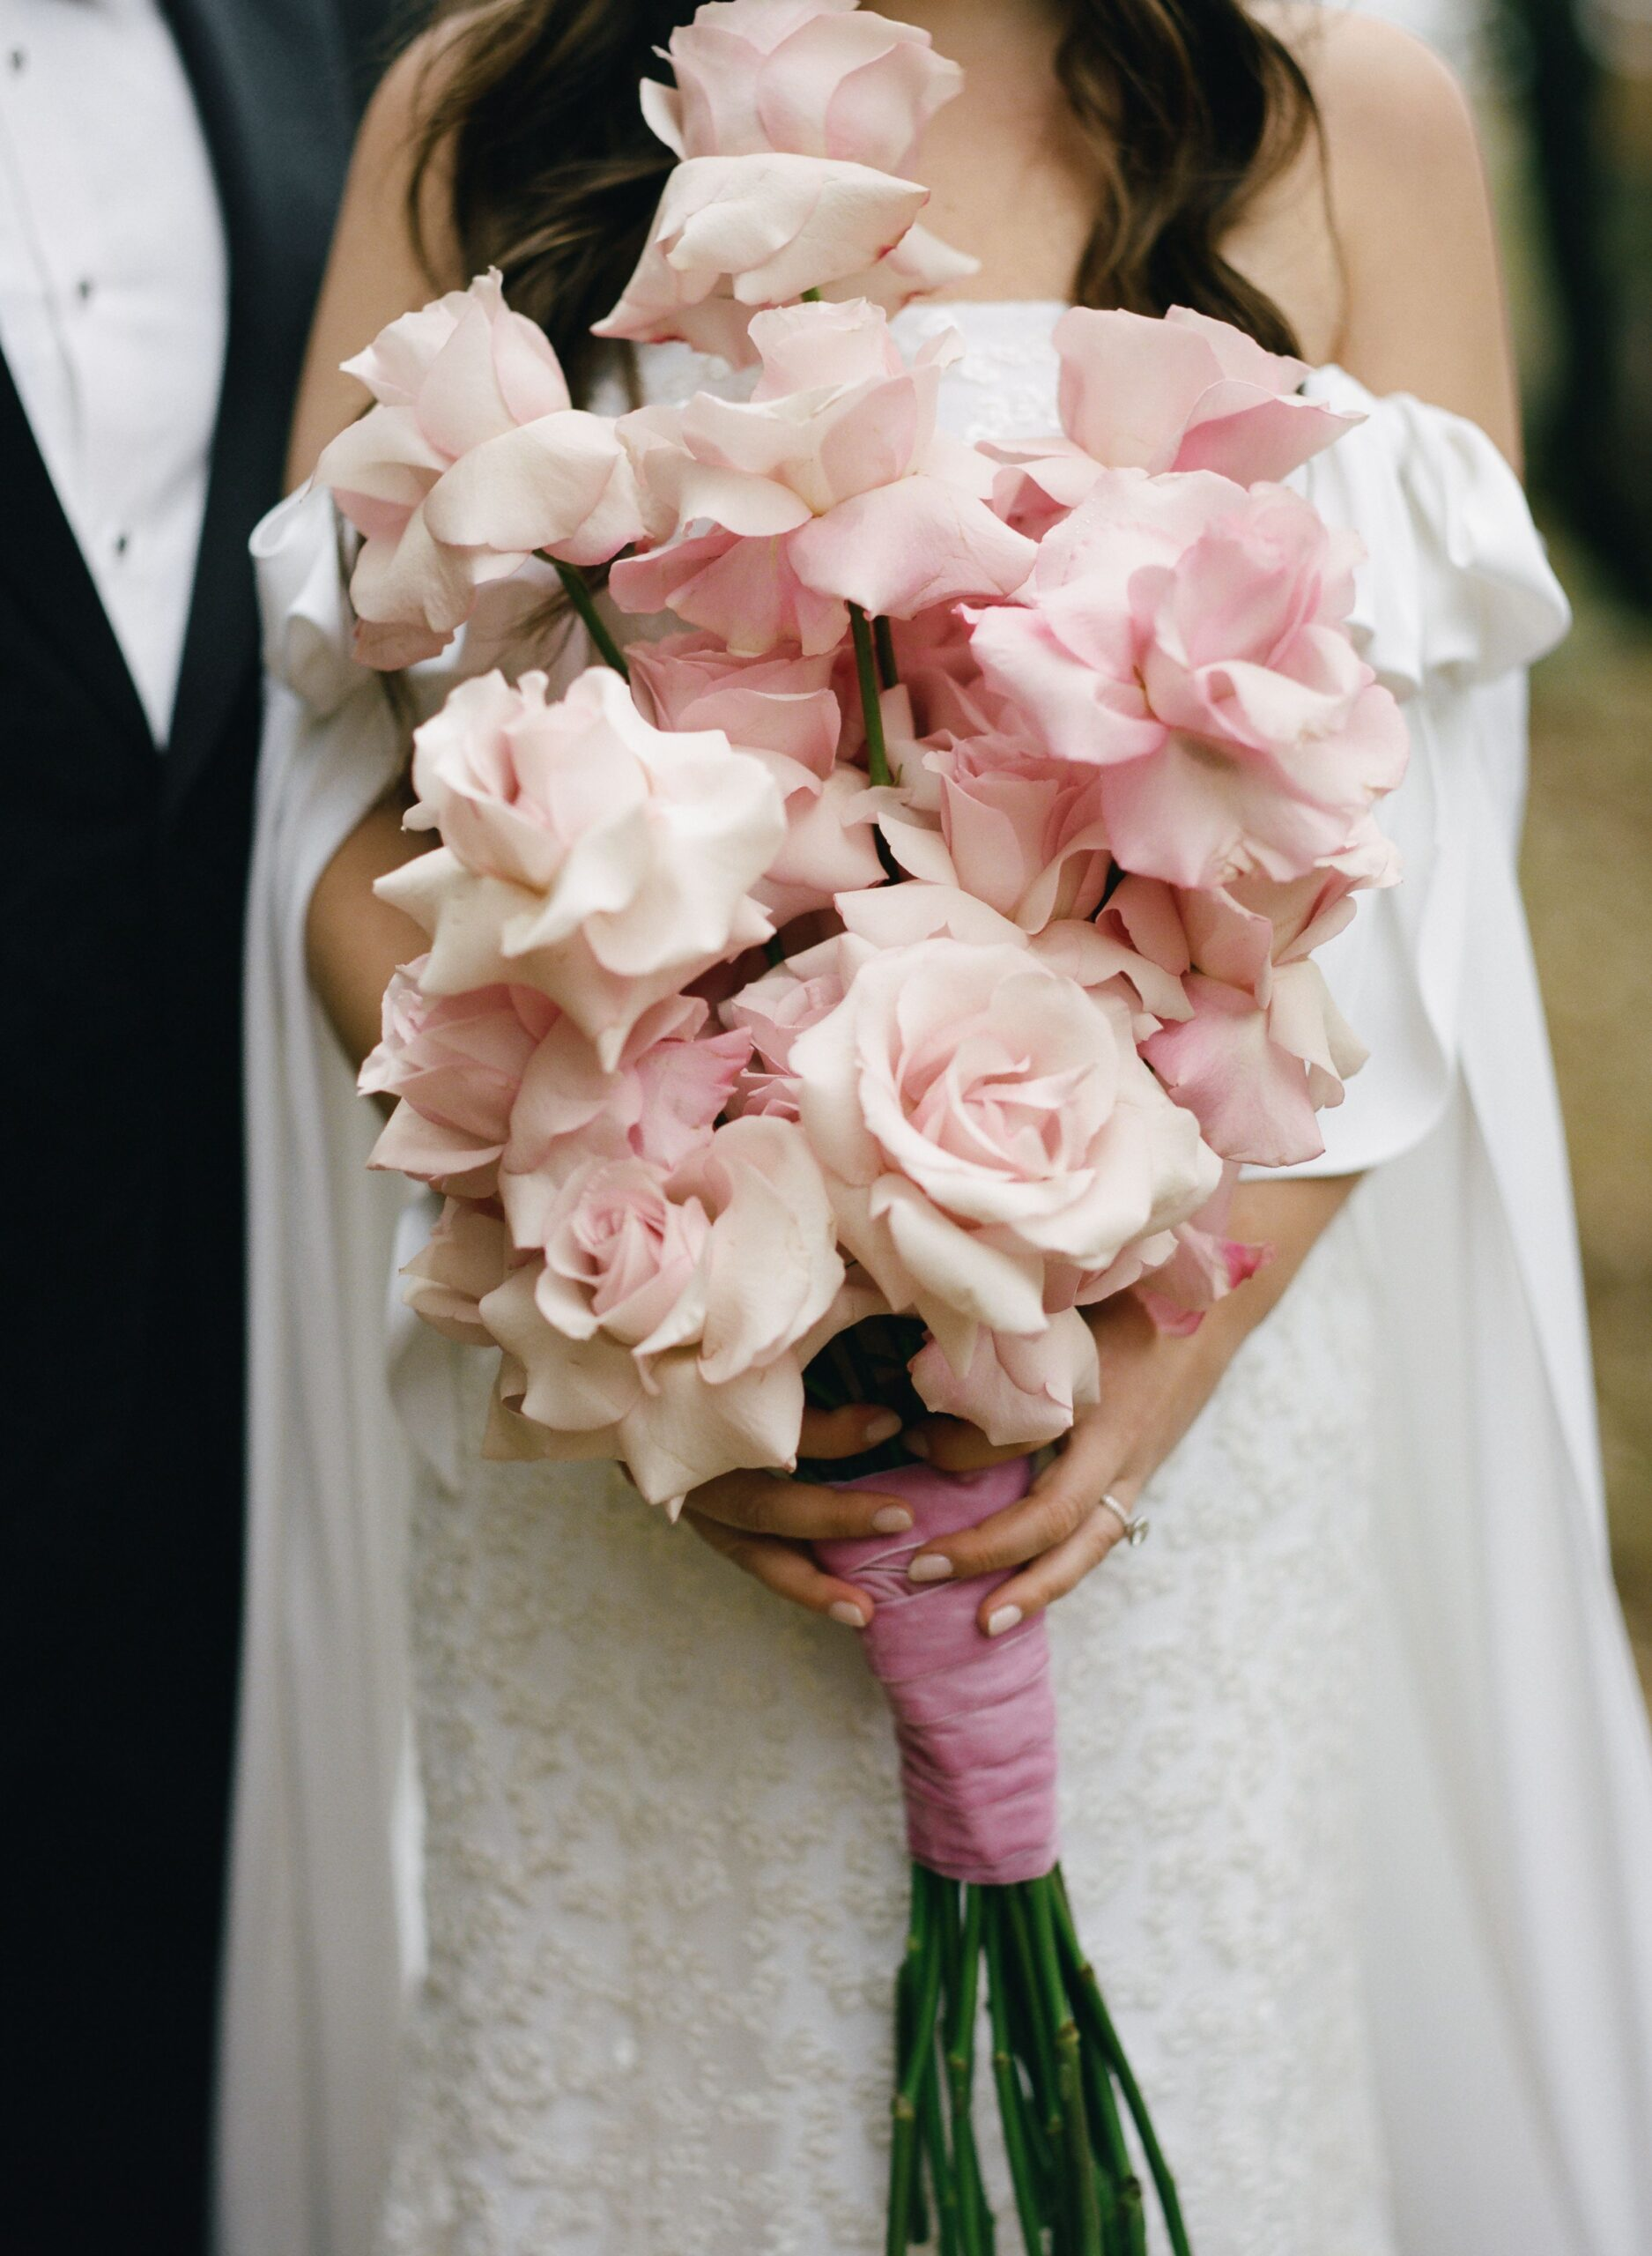 choose pink roses wedding bouquet for your wedding 1 1 scaled - Choose Natural Hand Tied Wedding Bouquets for the Wedding